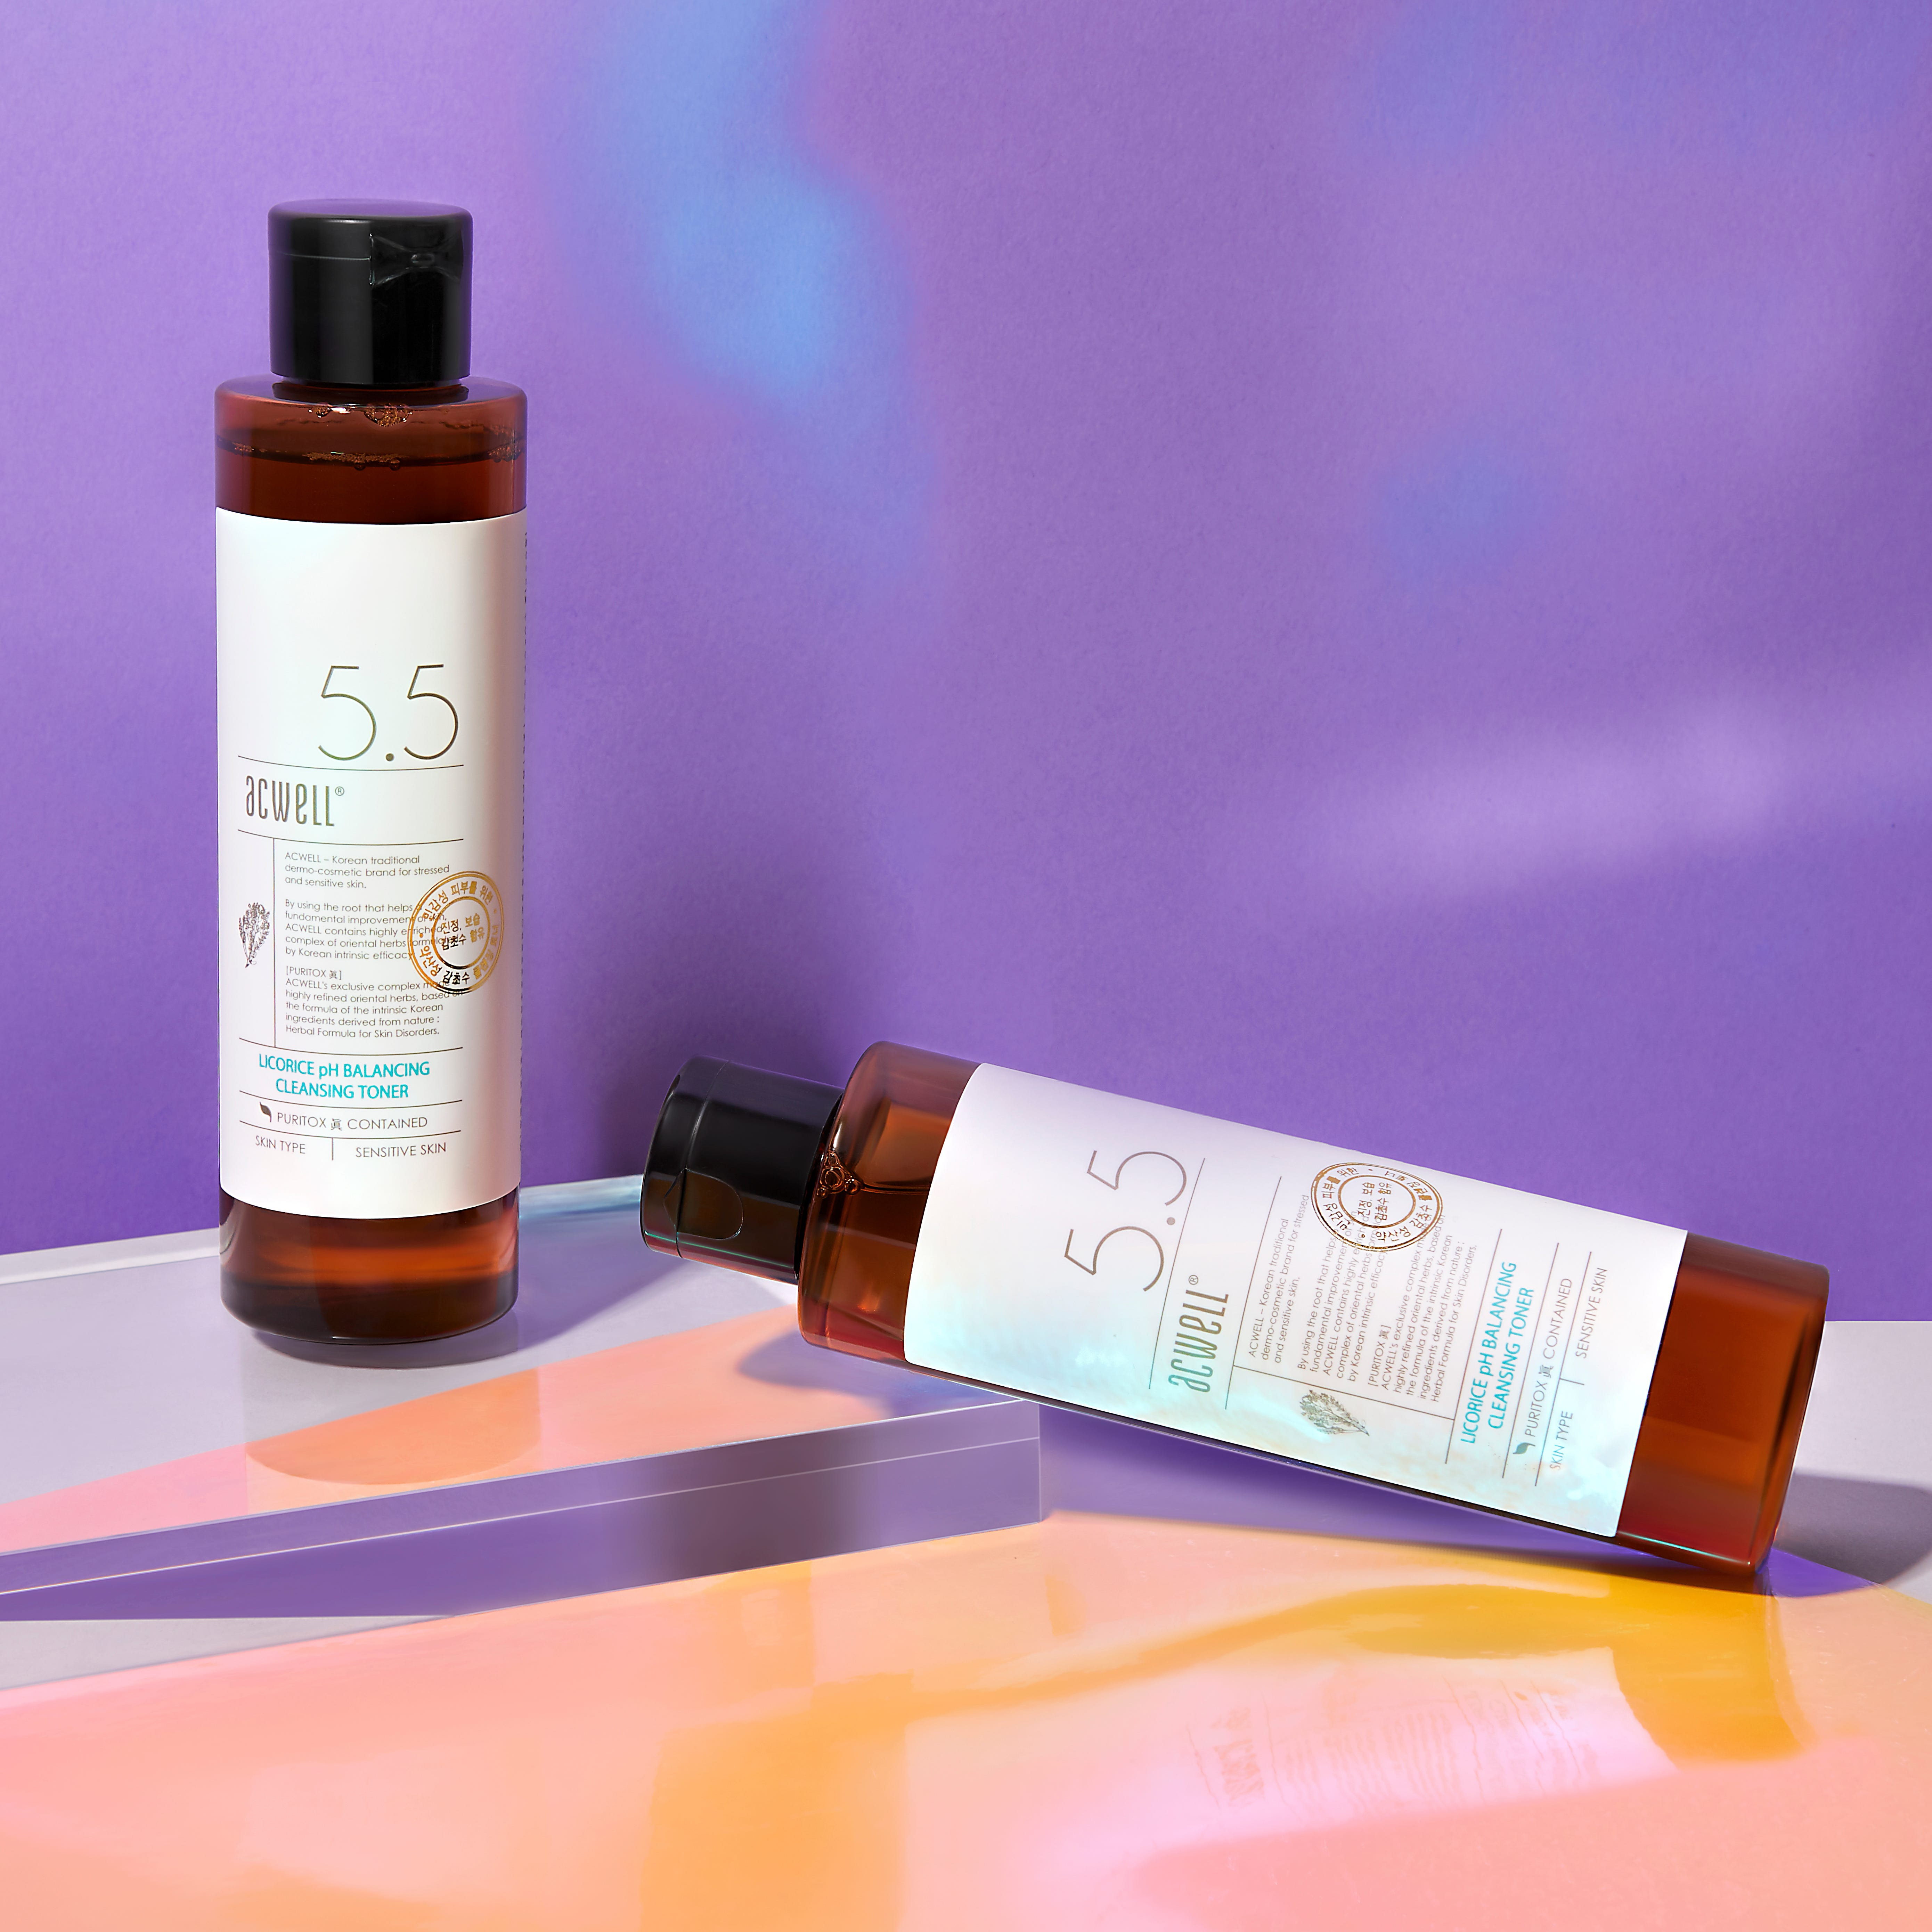 These Are The Best Korean Beauty Products Of 2018 Nature Republic Herb Blending Toner